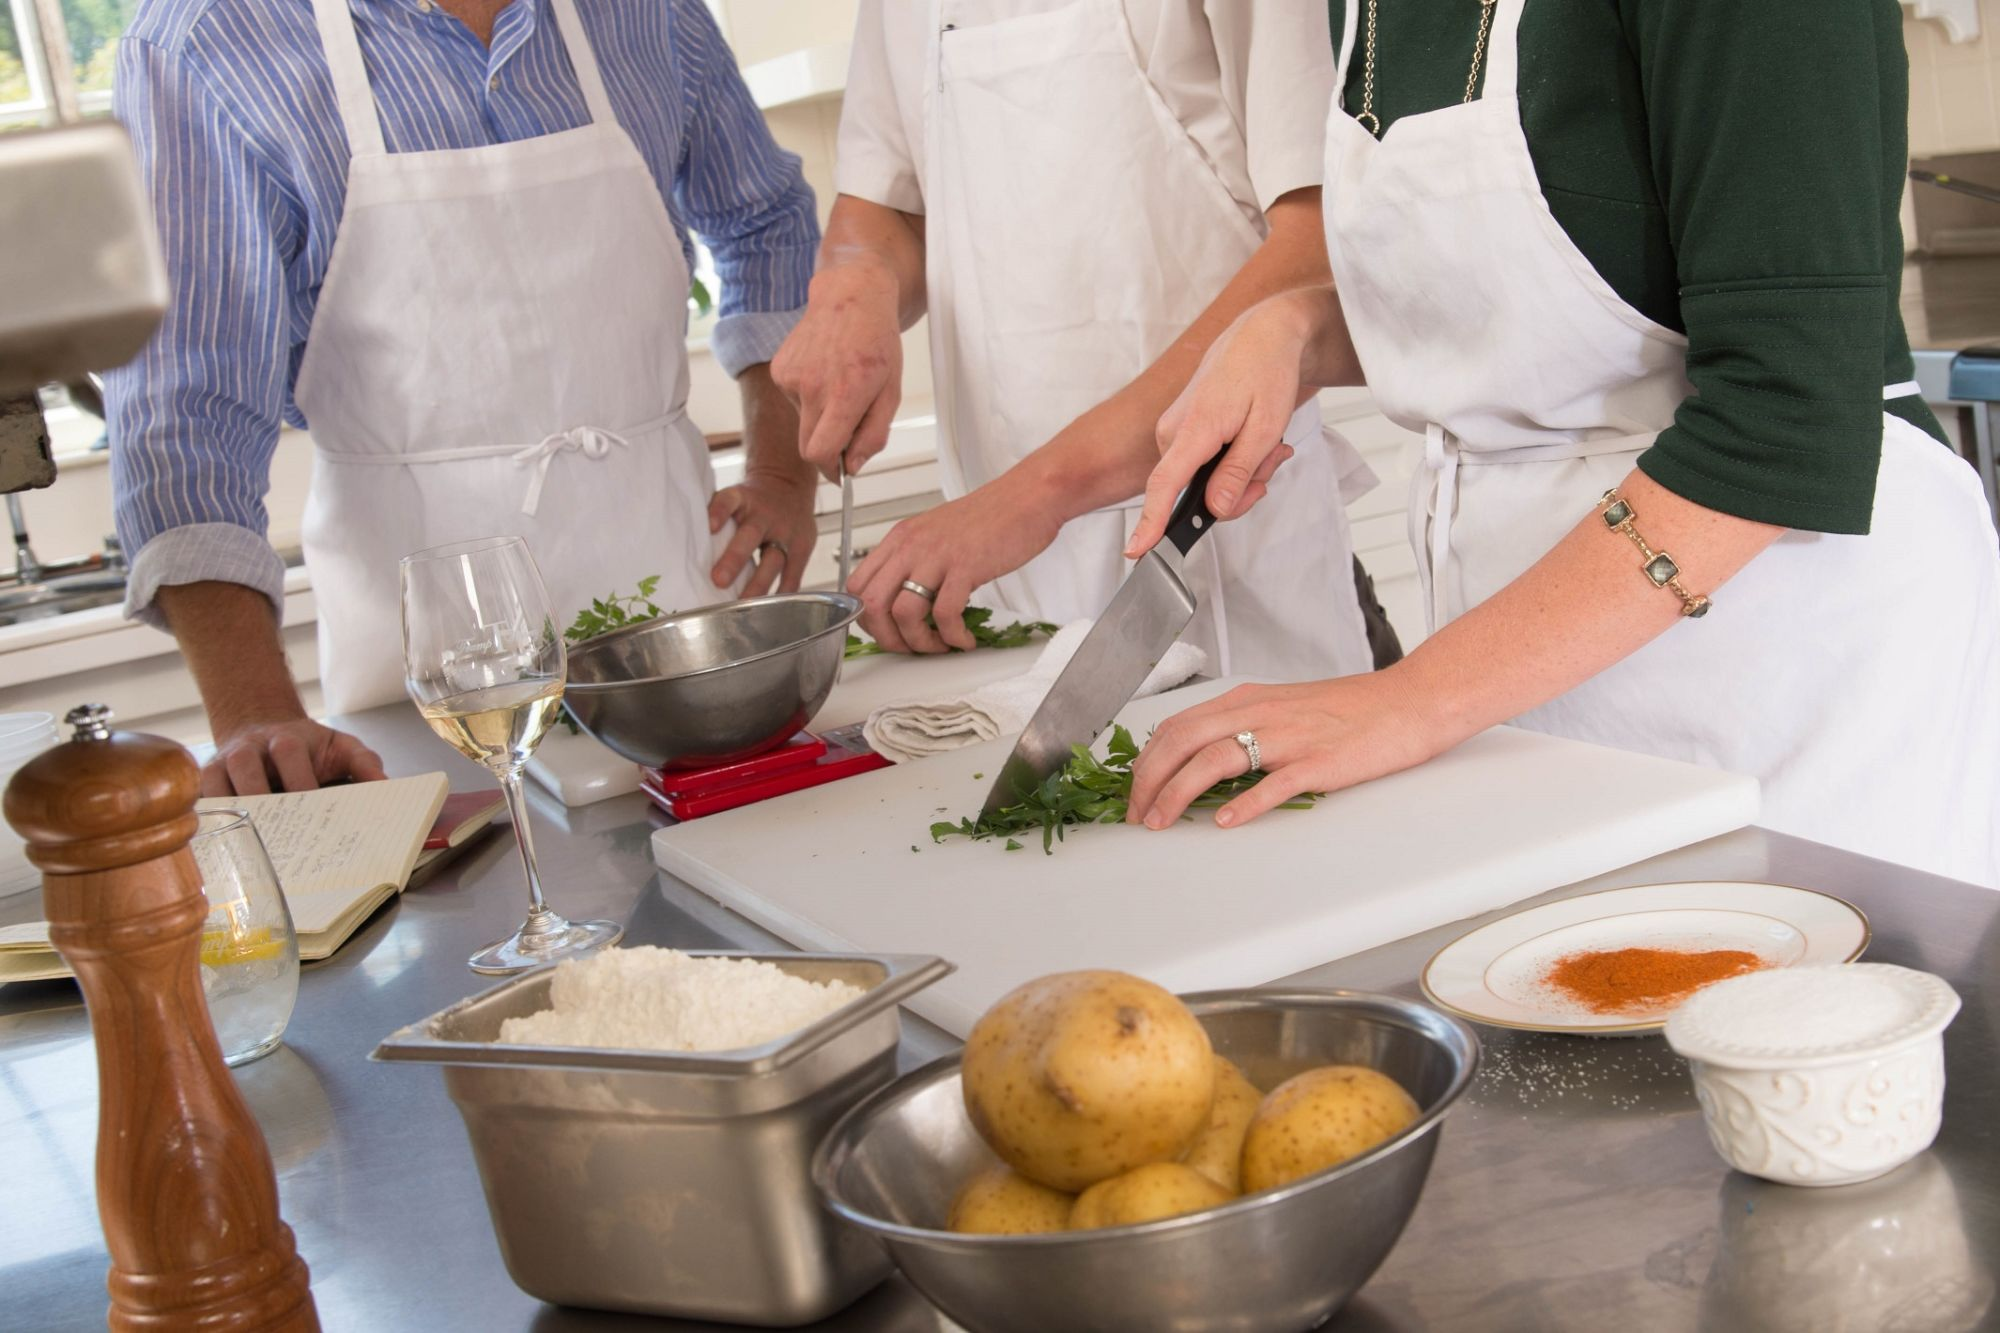 Trump Winery Cooking Class